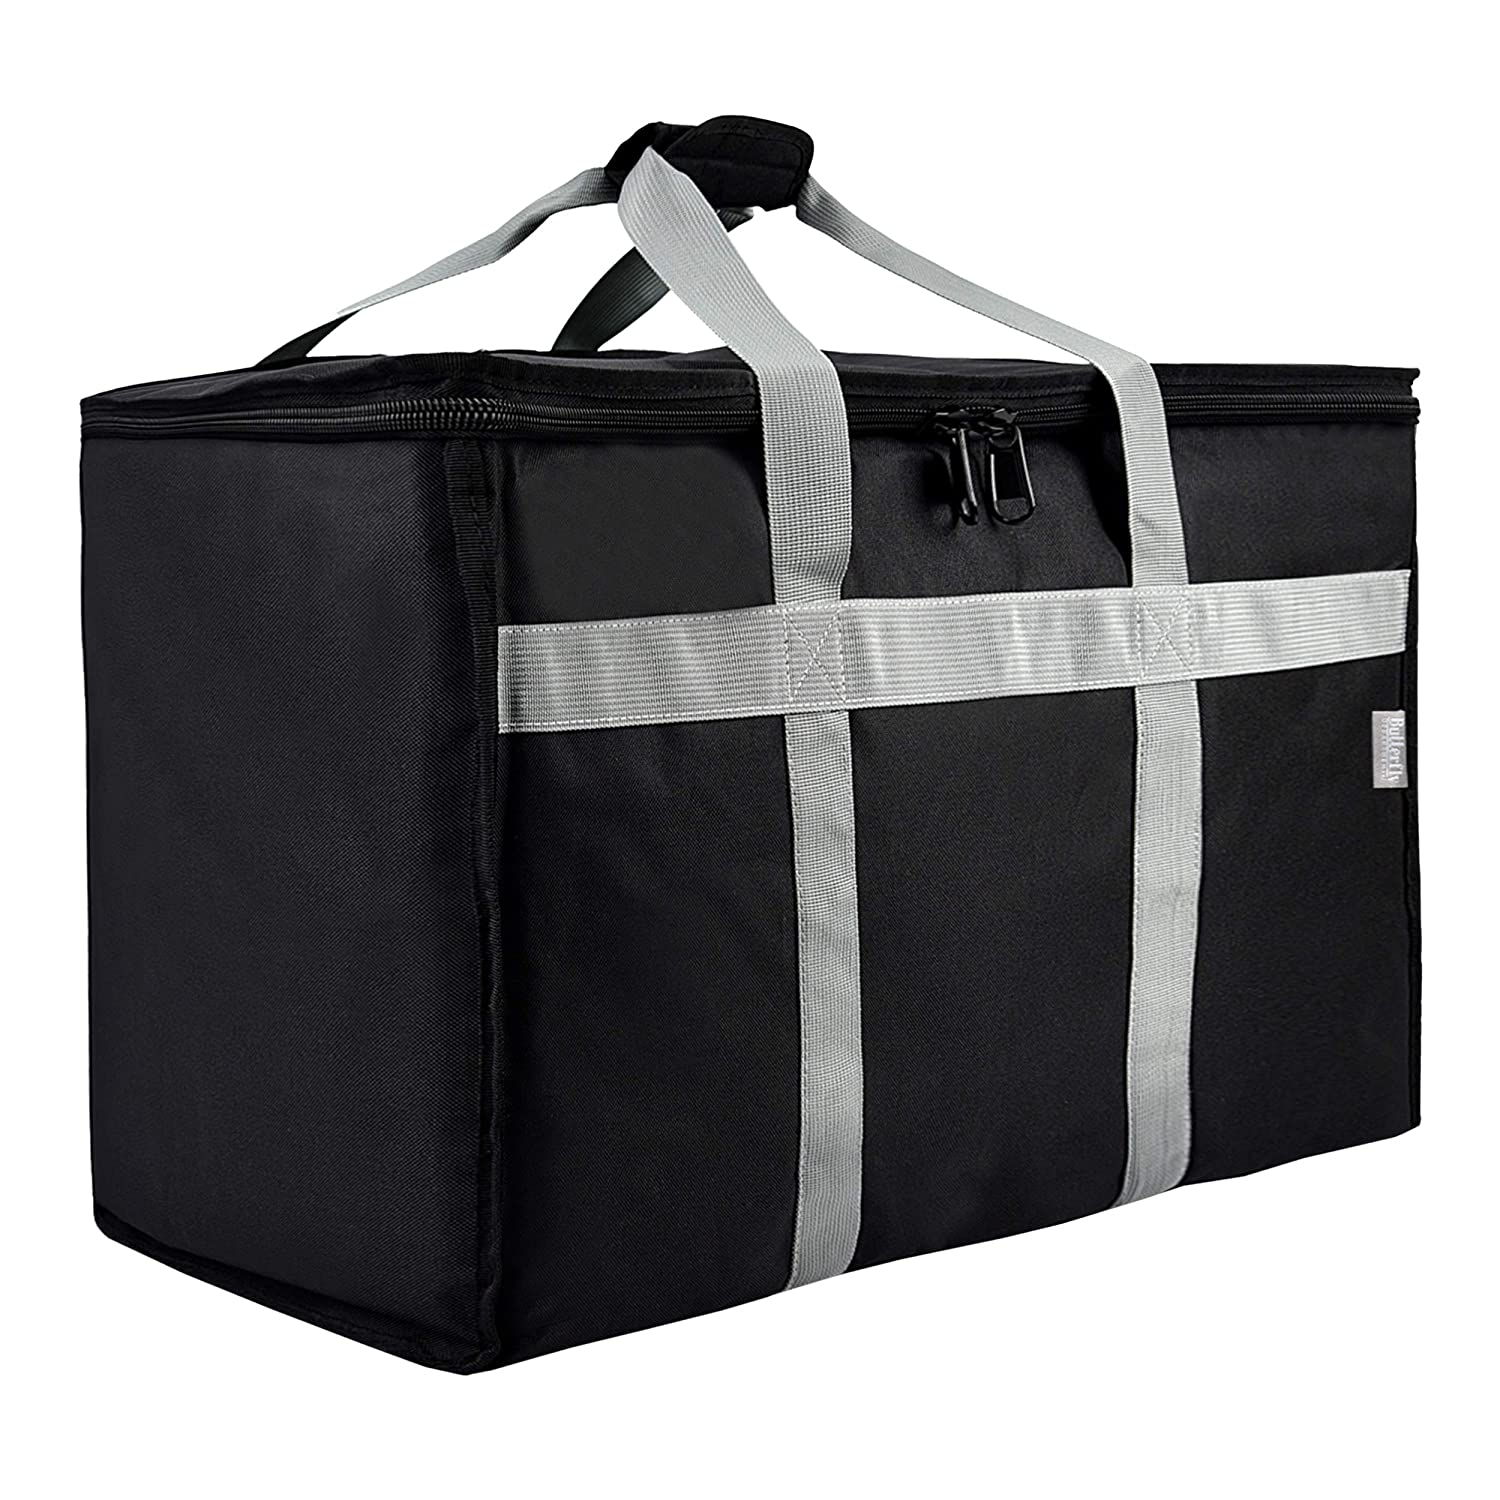 Butterfly Department Insulated Food Delivery Bag - 23x14x15 inches - Water-Resistant Interior - Ideal for Commercial Catering - Reusable Grocery Bag - Professional and Heavy-Duty - XXL - Black